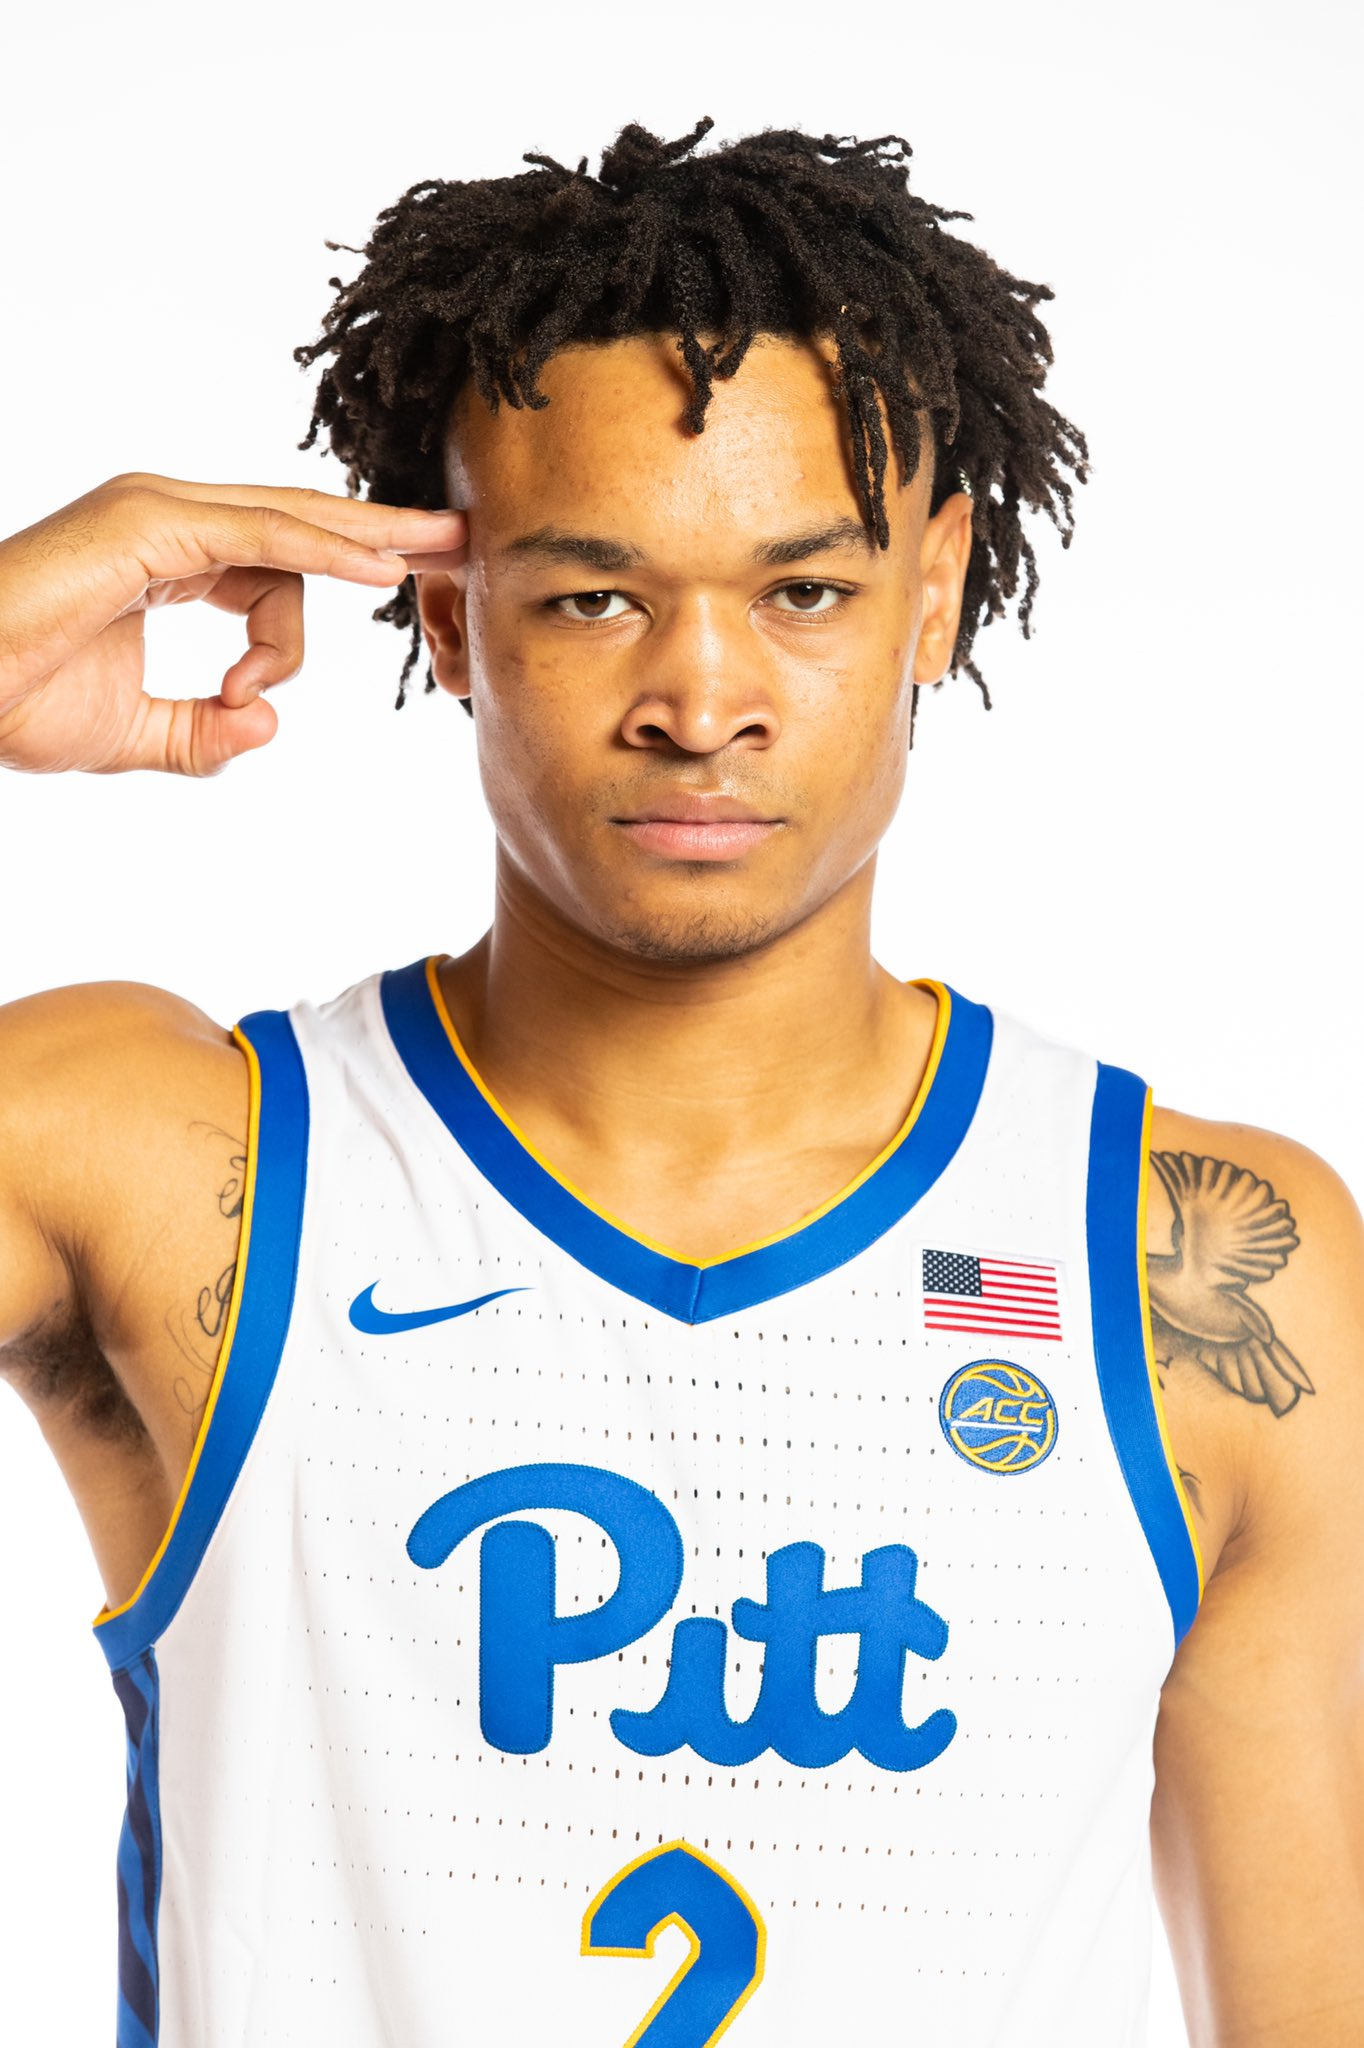 Pittsburgh Panthers NCAA Basketball: The Shoot: 2019 Edition. #ZooEra #H2P.  Tweet by @Pitt_MBB